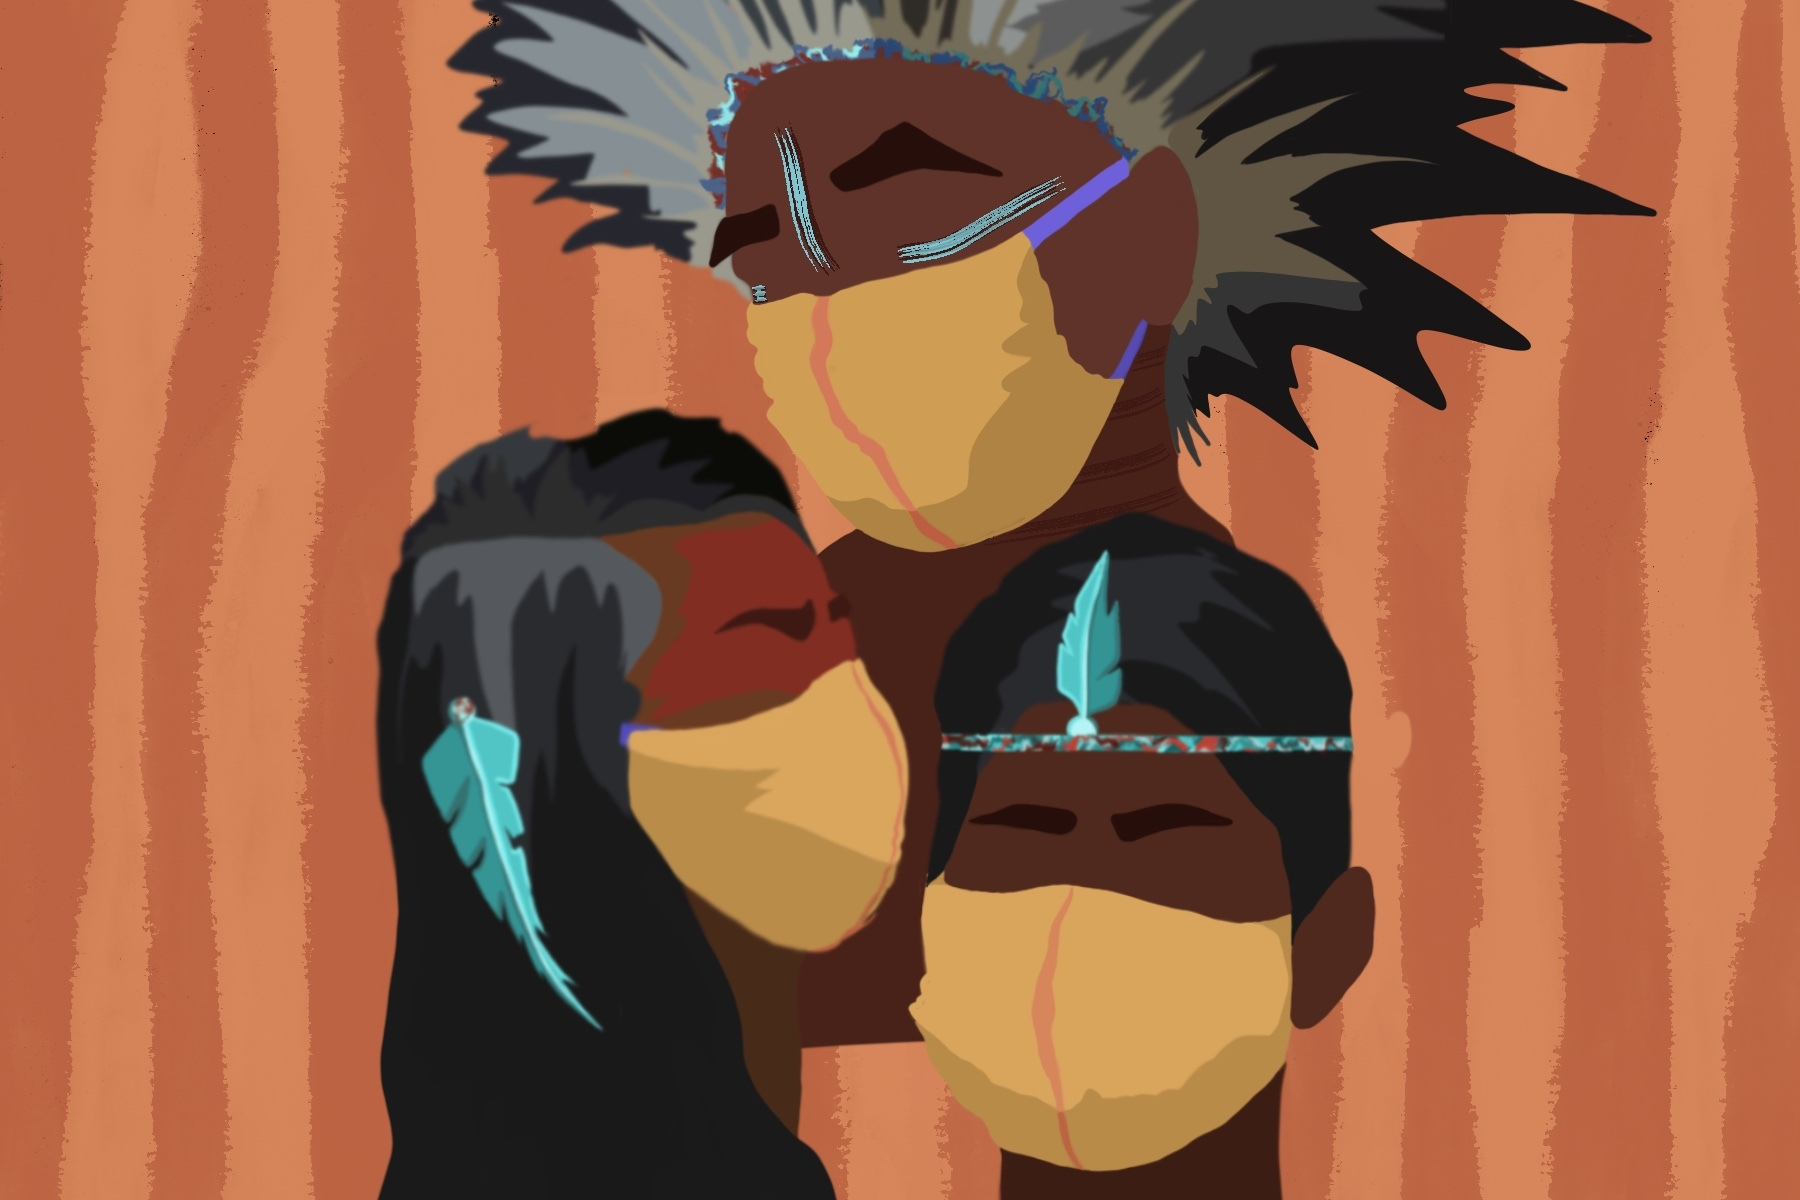 An illustration of three Indigenous people wearing medical masks and traditional headgear